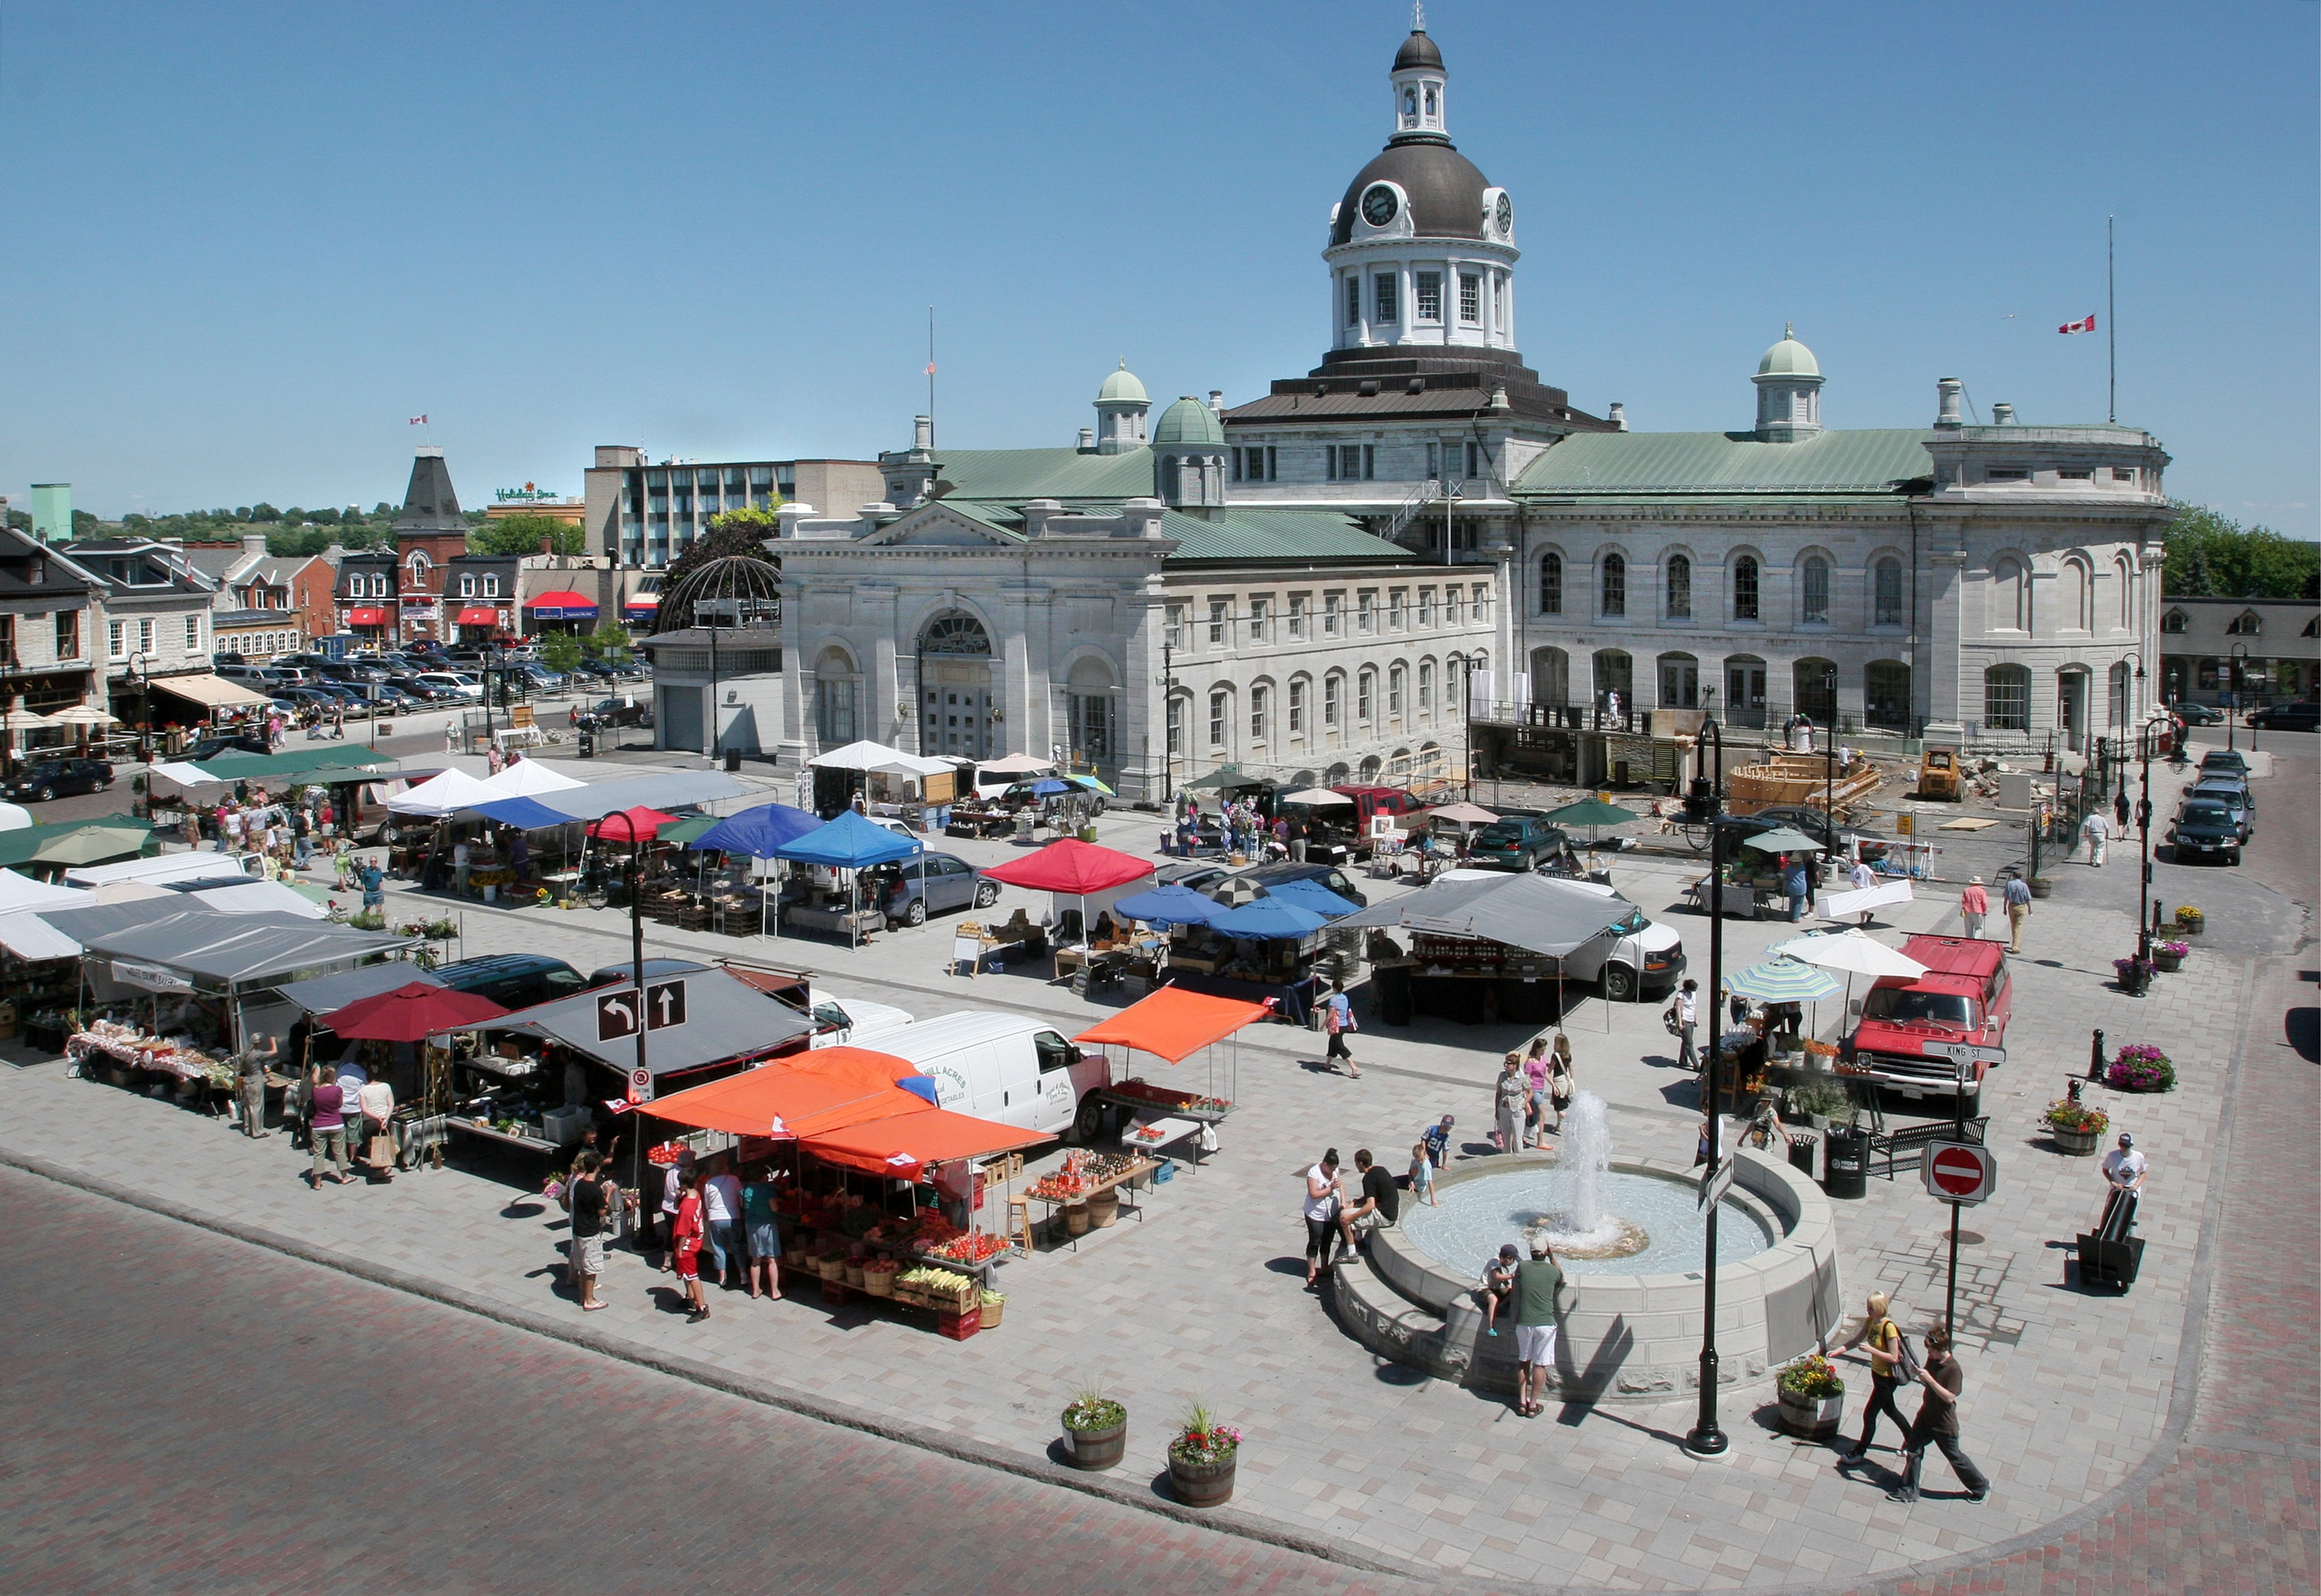 Taylor automall loves kingston ontario visit kingston today for The kingston